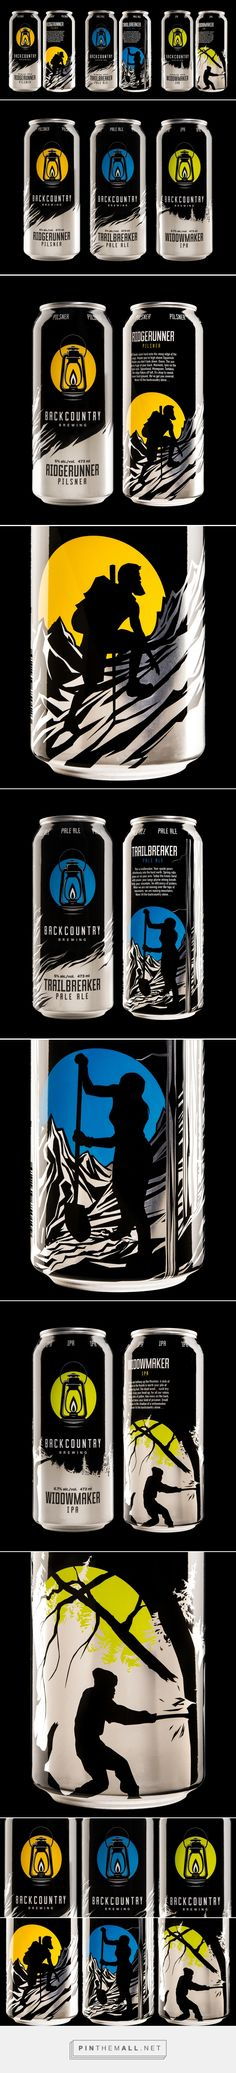 Backcountry Brewing Beer - Packaging of the World - Creative Package Design Gallery - http://www.packagingoftheworld.com/2017/05/backcountry-brewing.html